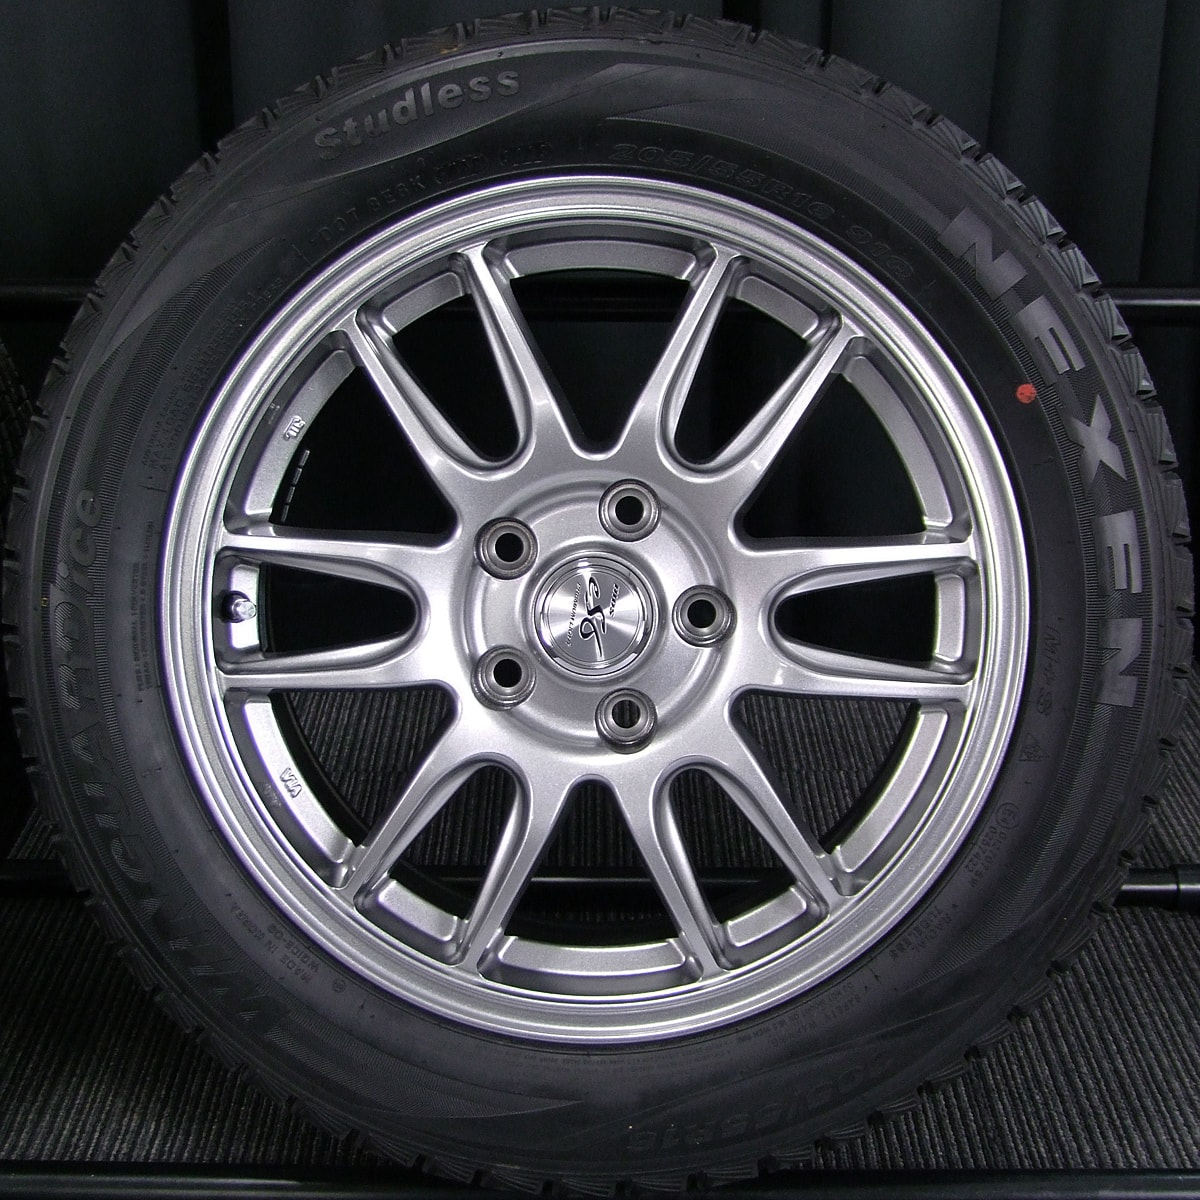 AUTOBACS DIOS ES6 PREMIUM LIGHT ハイグロス NEXEN WINGUARD ICE 205/55R16 4本SET